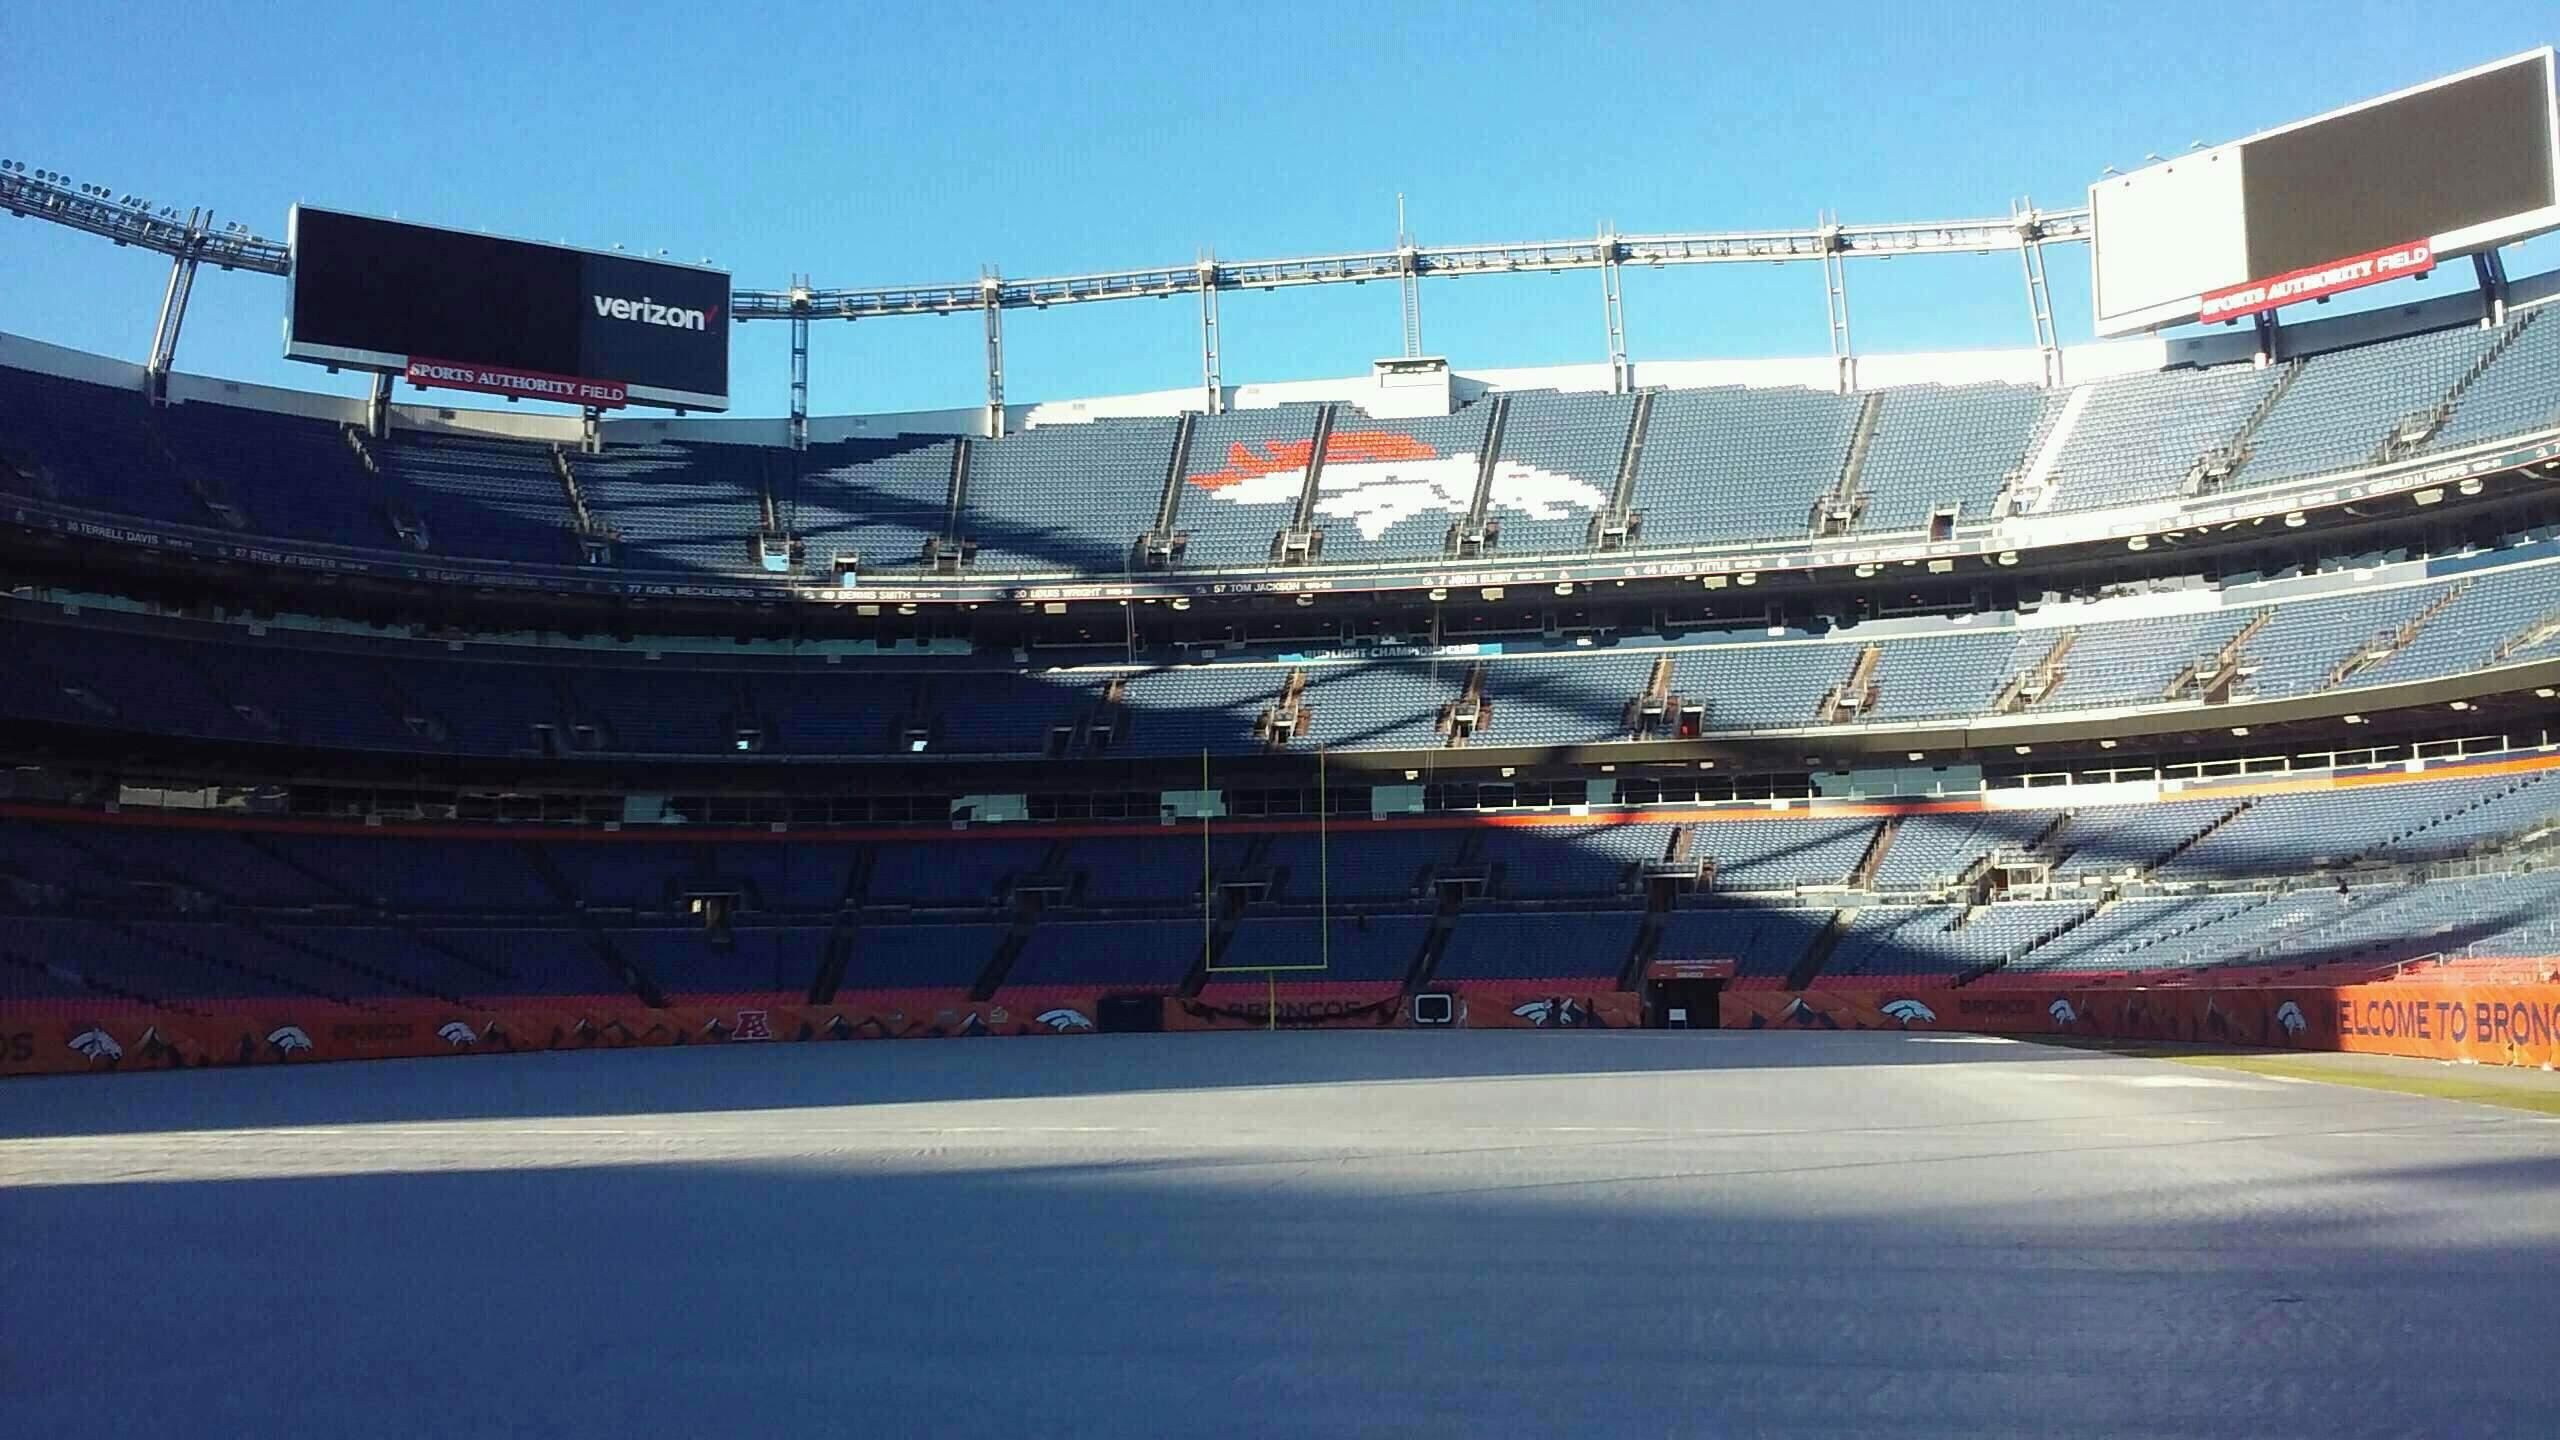 Empower Field at Mile High Stadium Section 129 Row 1